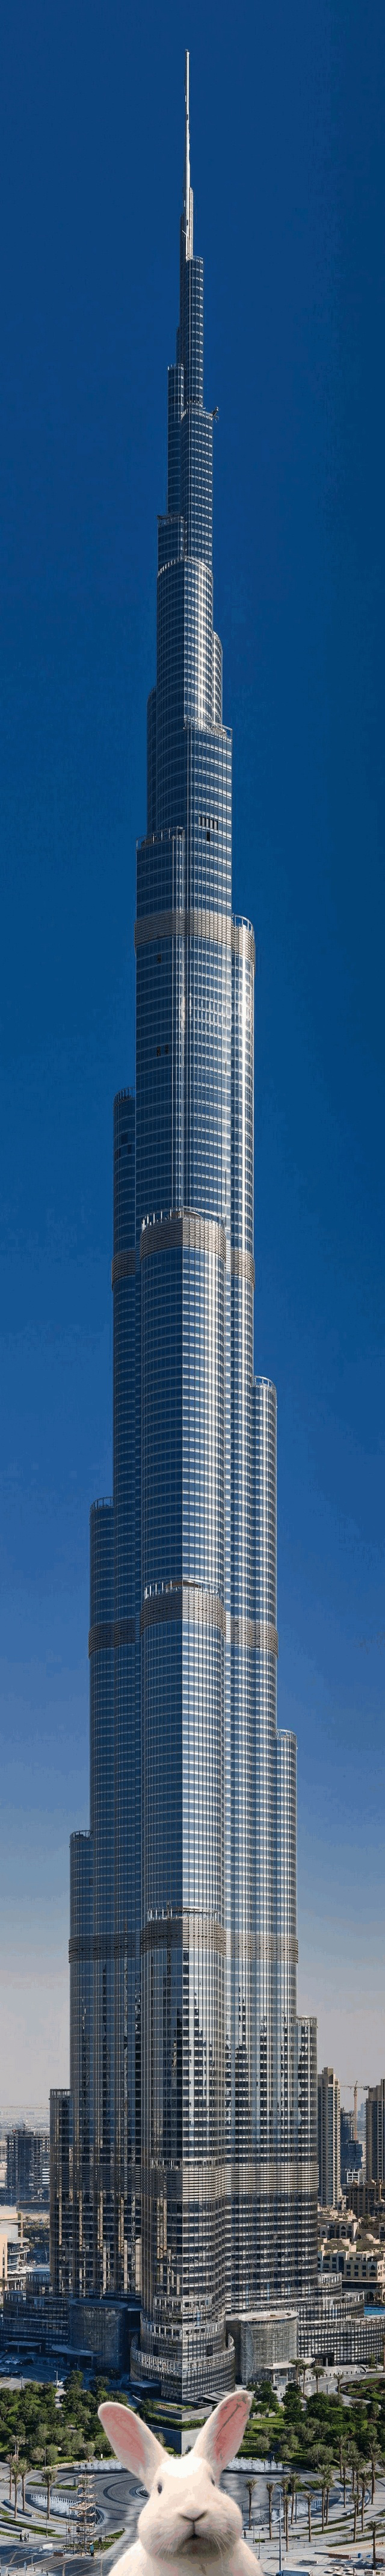 Very High Building